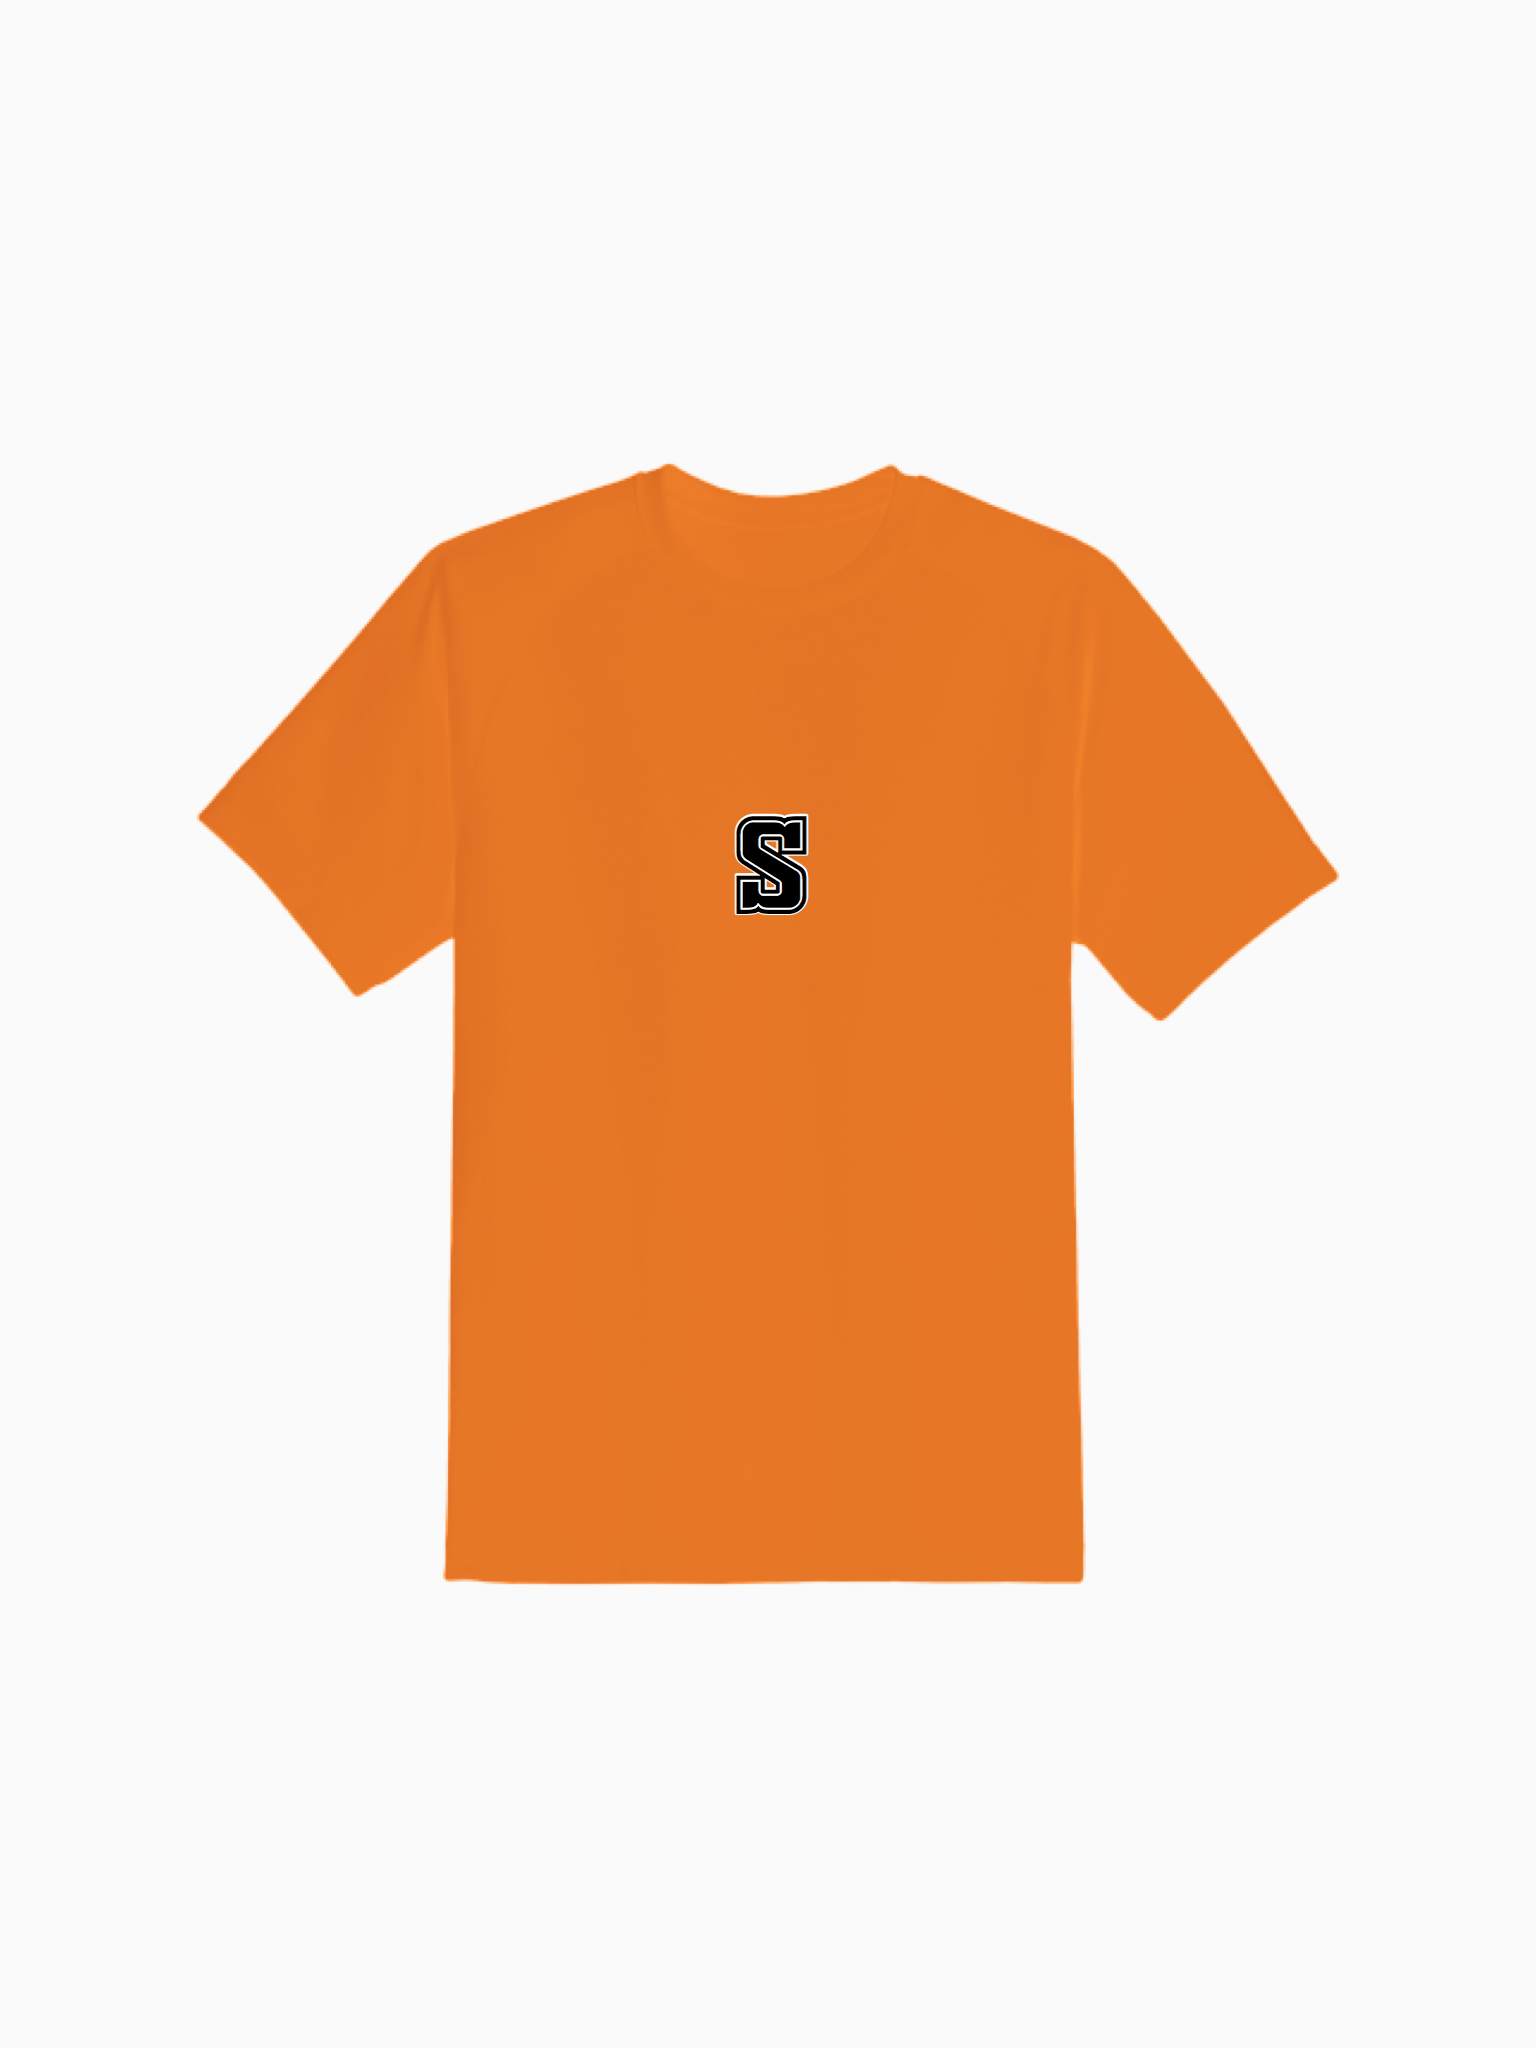 """COLLEGE"" Tee in Pumpkin Orange"